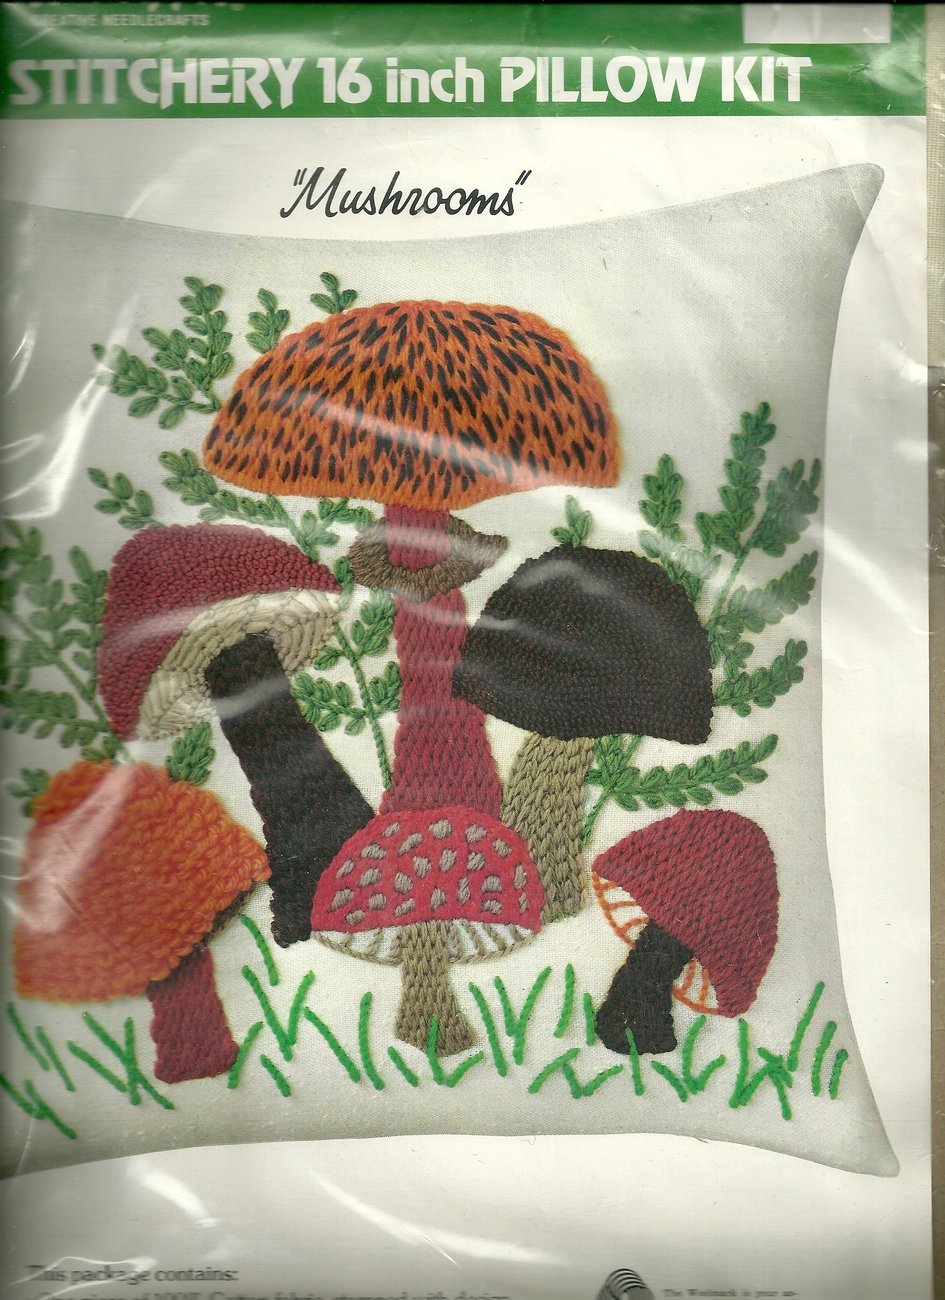 "WONDER ART STITCHERY 16"" PILLOW KIT "" MUSHROOMS"""